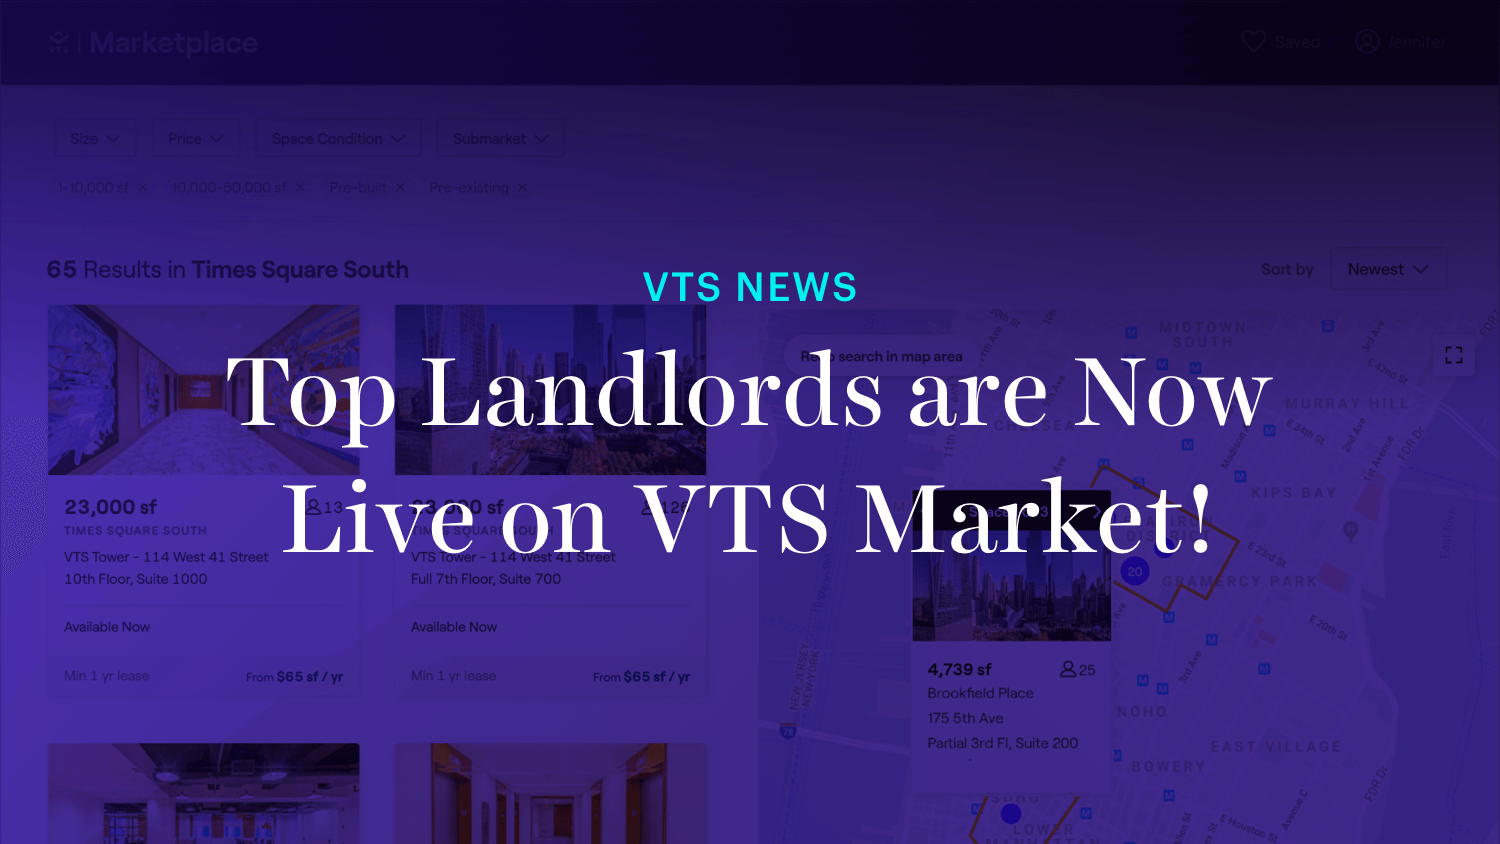 Top Landlords are Now Live on VTS Market!